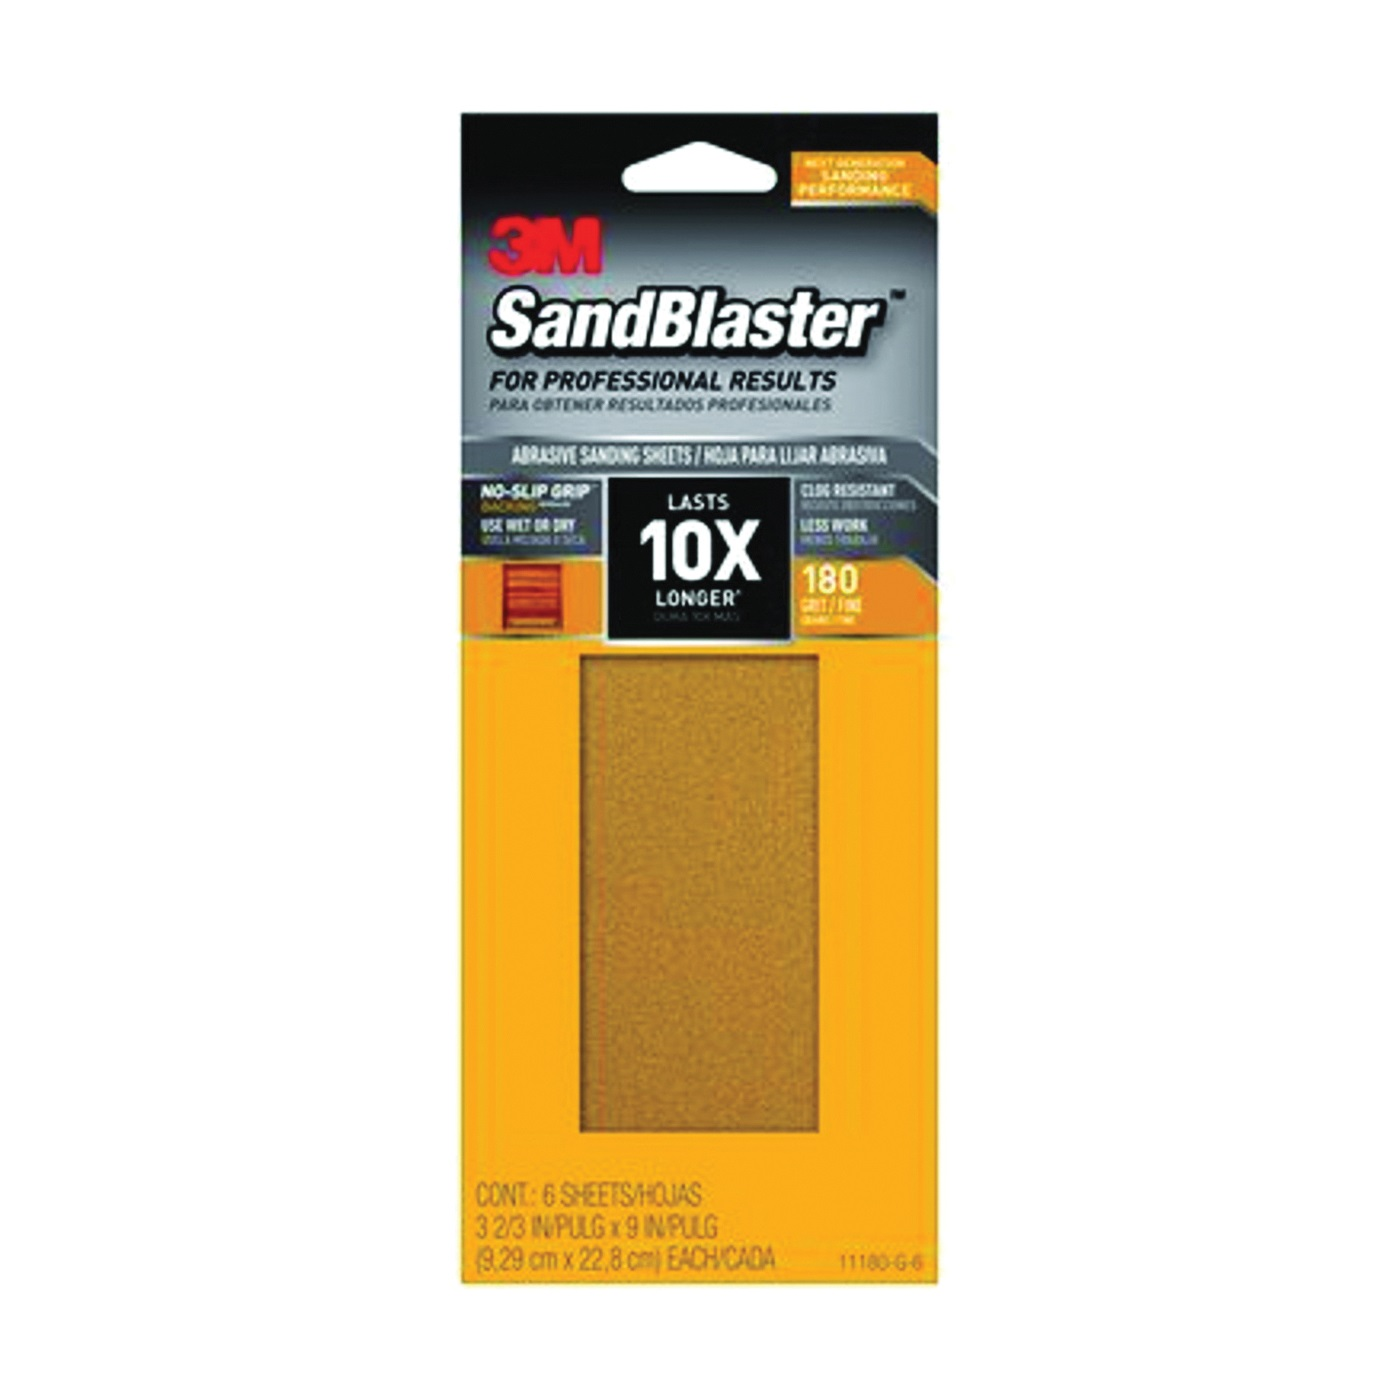 Picture of 3M SandBlaster 11180-G-6 Sandpaper, 9 in L, 3-2/3 in W, 180 Grit, Medium, Synthetic Mineral Abrasive